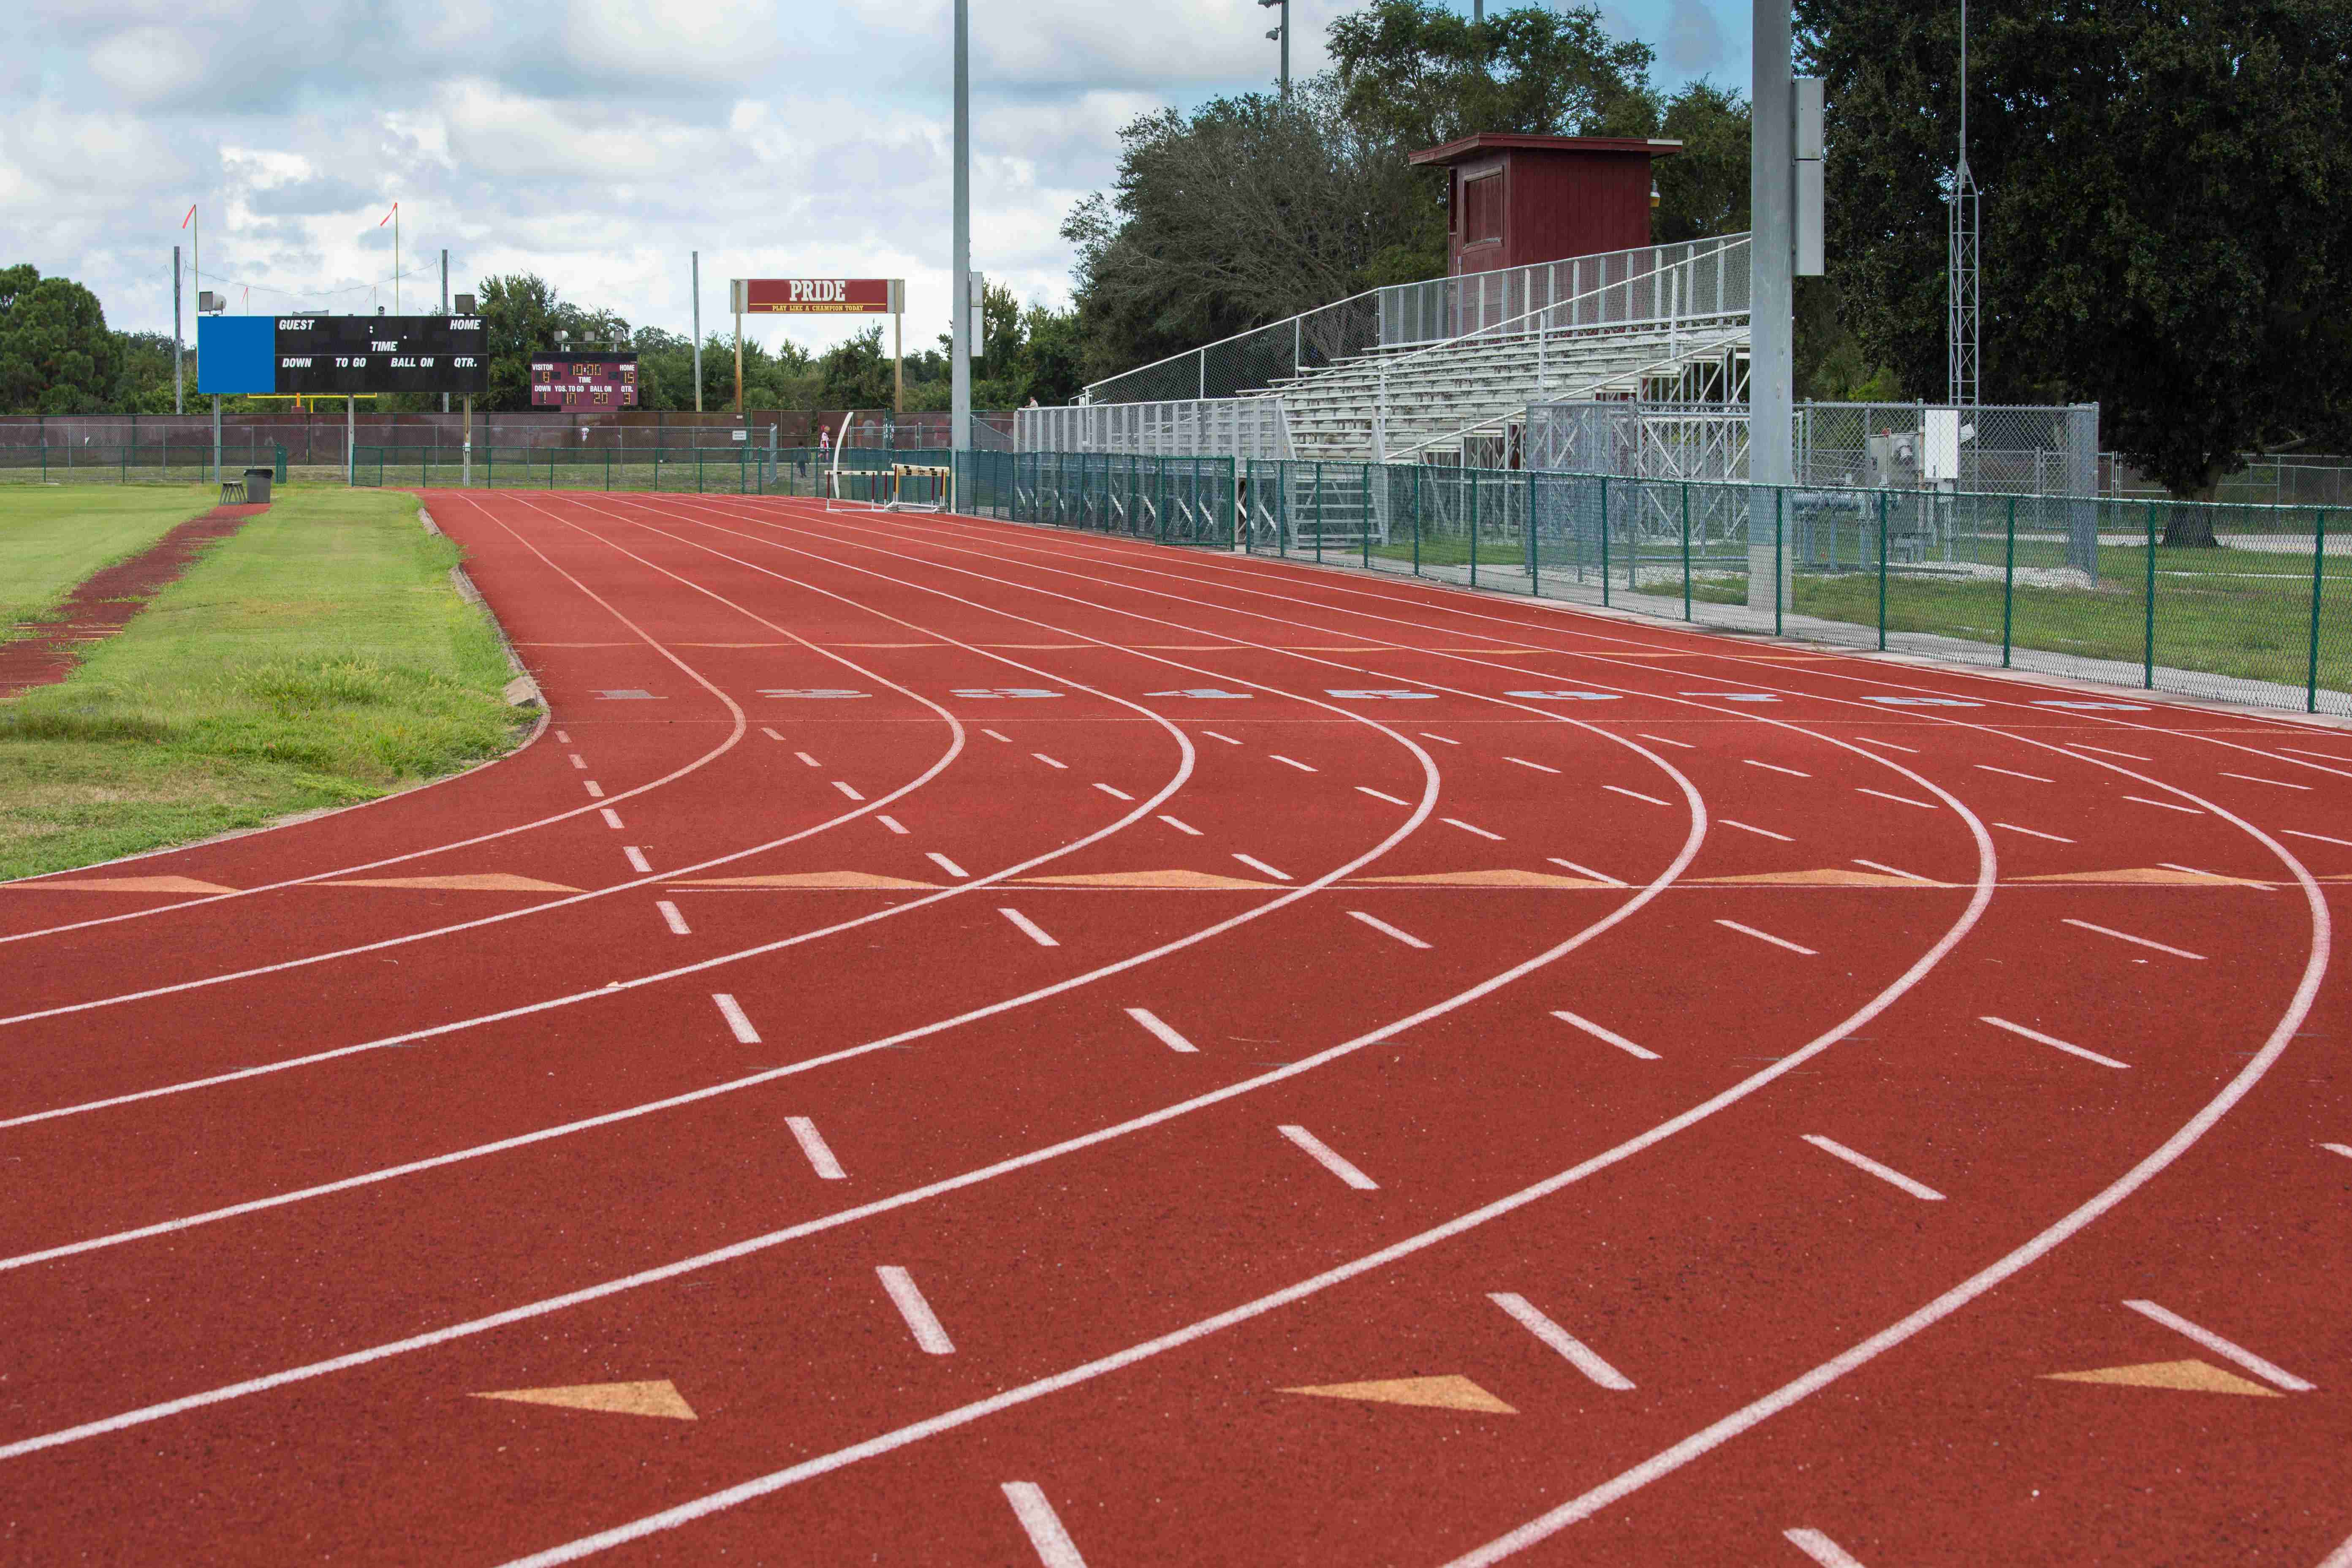 This track and field facility is a symbol of the importance of sports and athletics as an instrument in preparing students for the future.